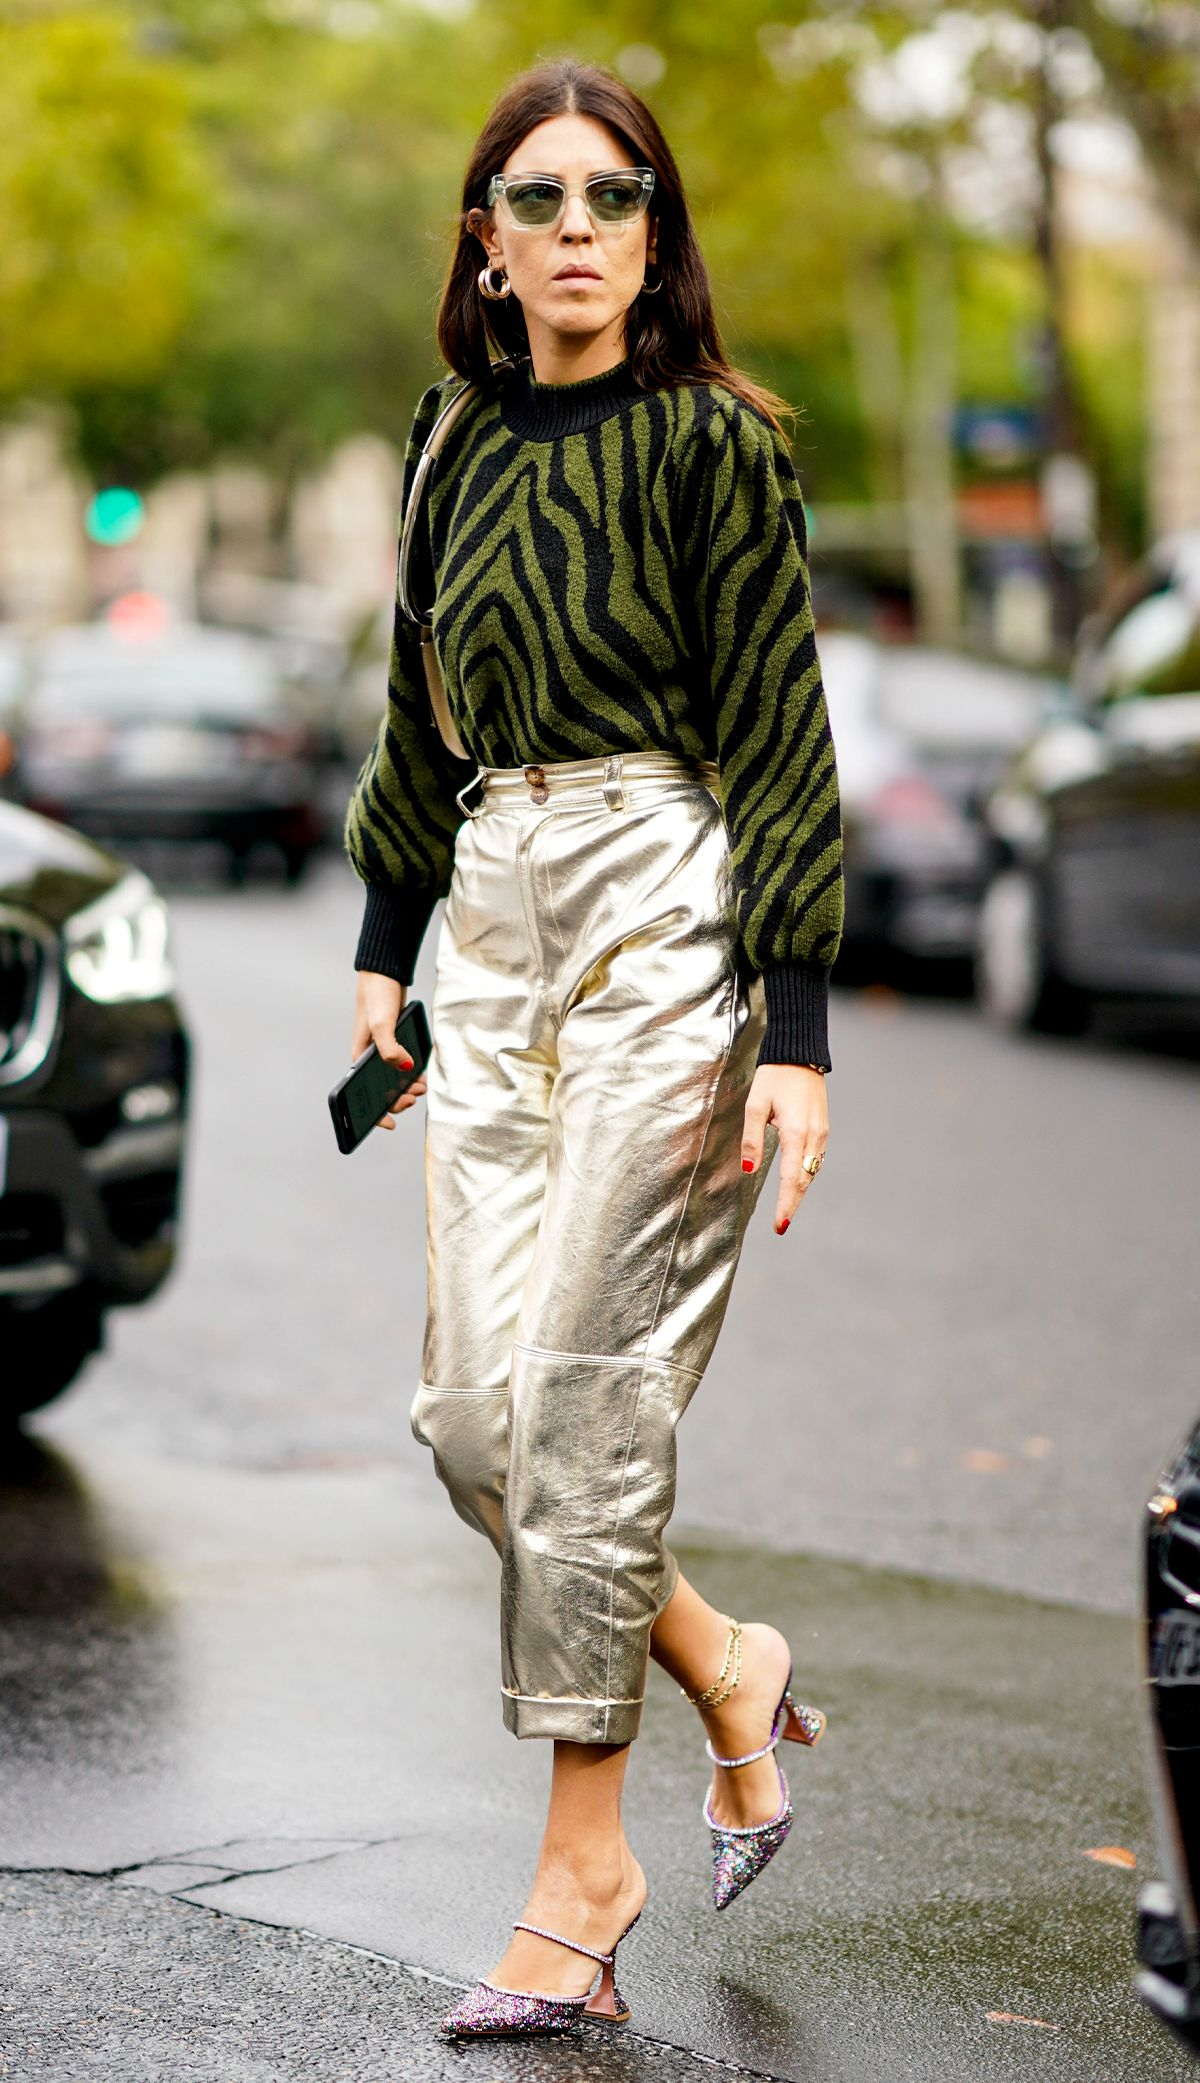 12 Outfits That Prove Zebra Print Is Not a Scary Trend